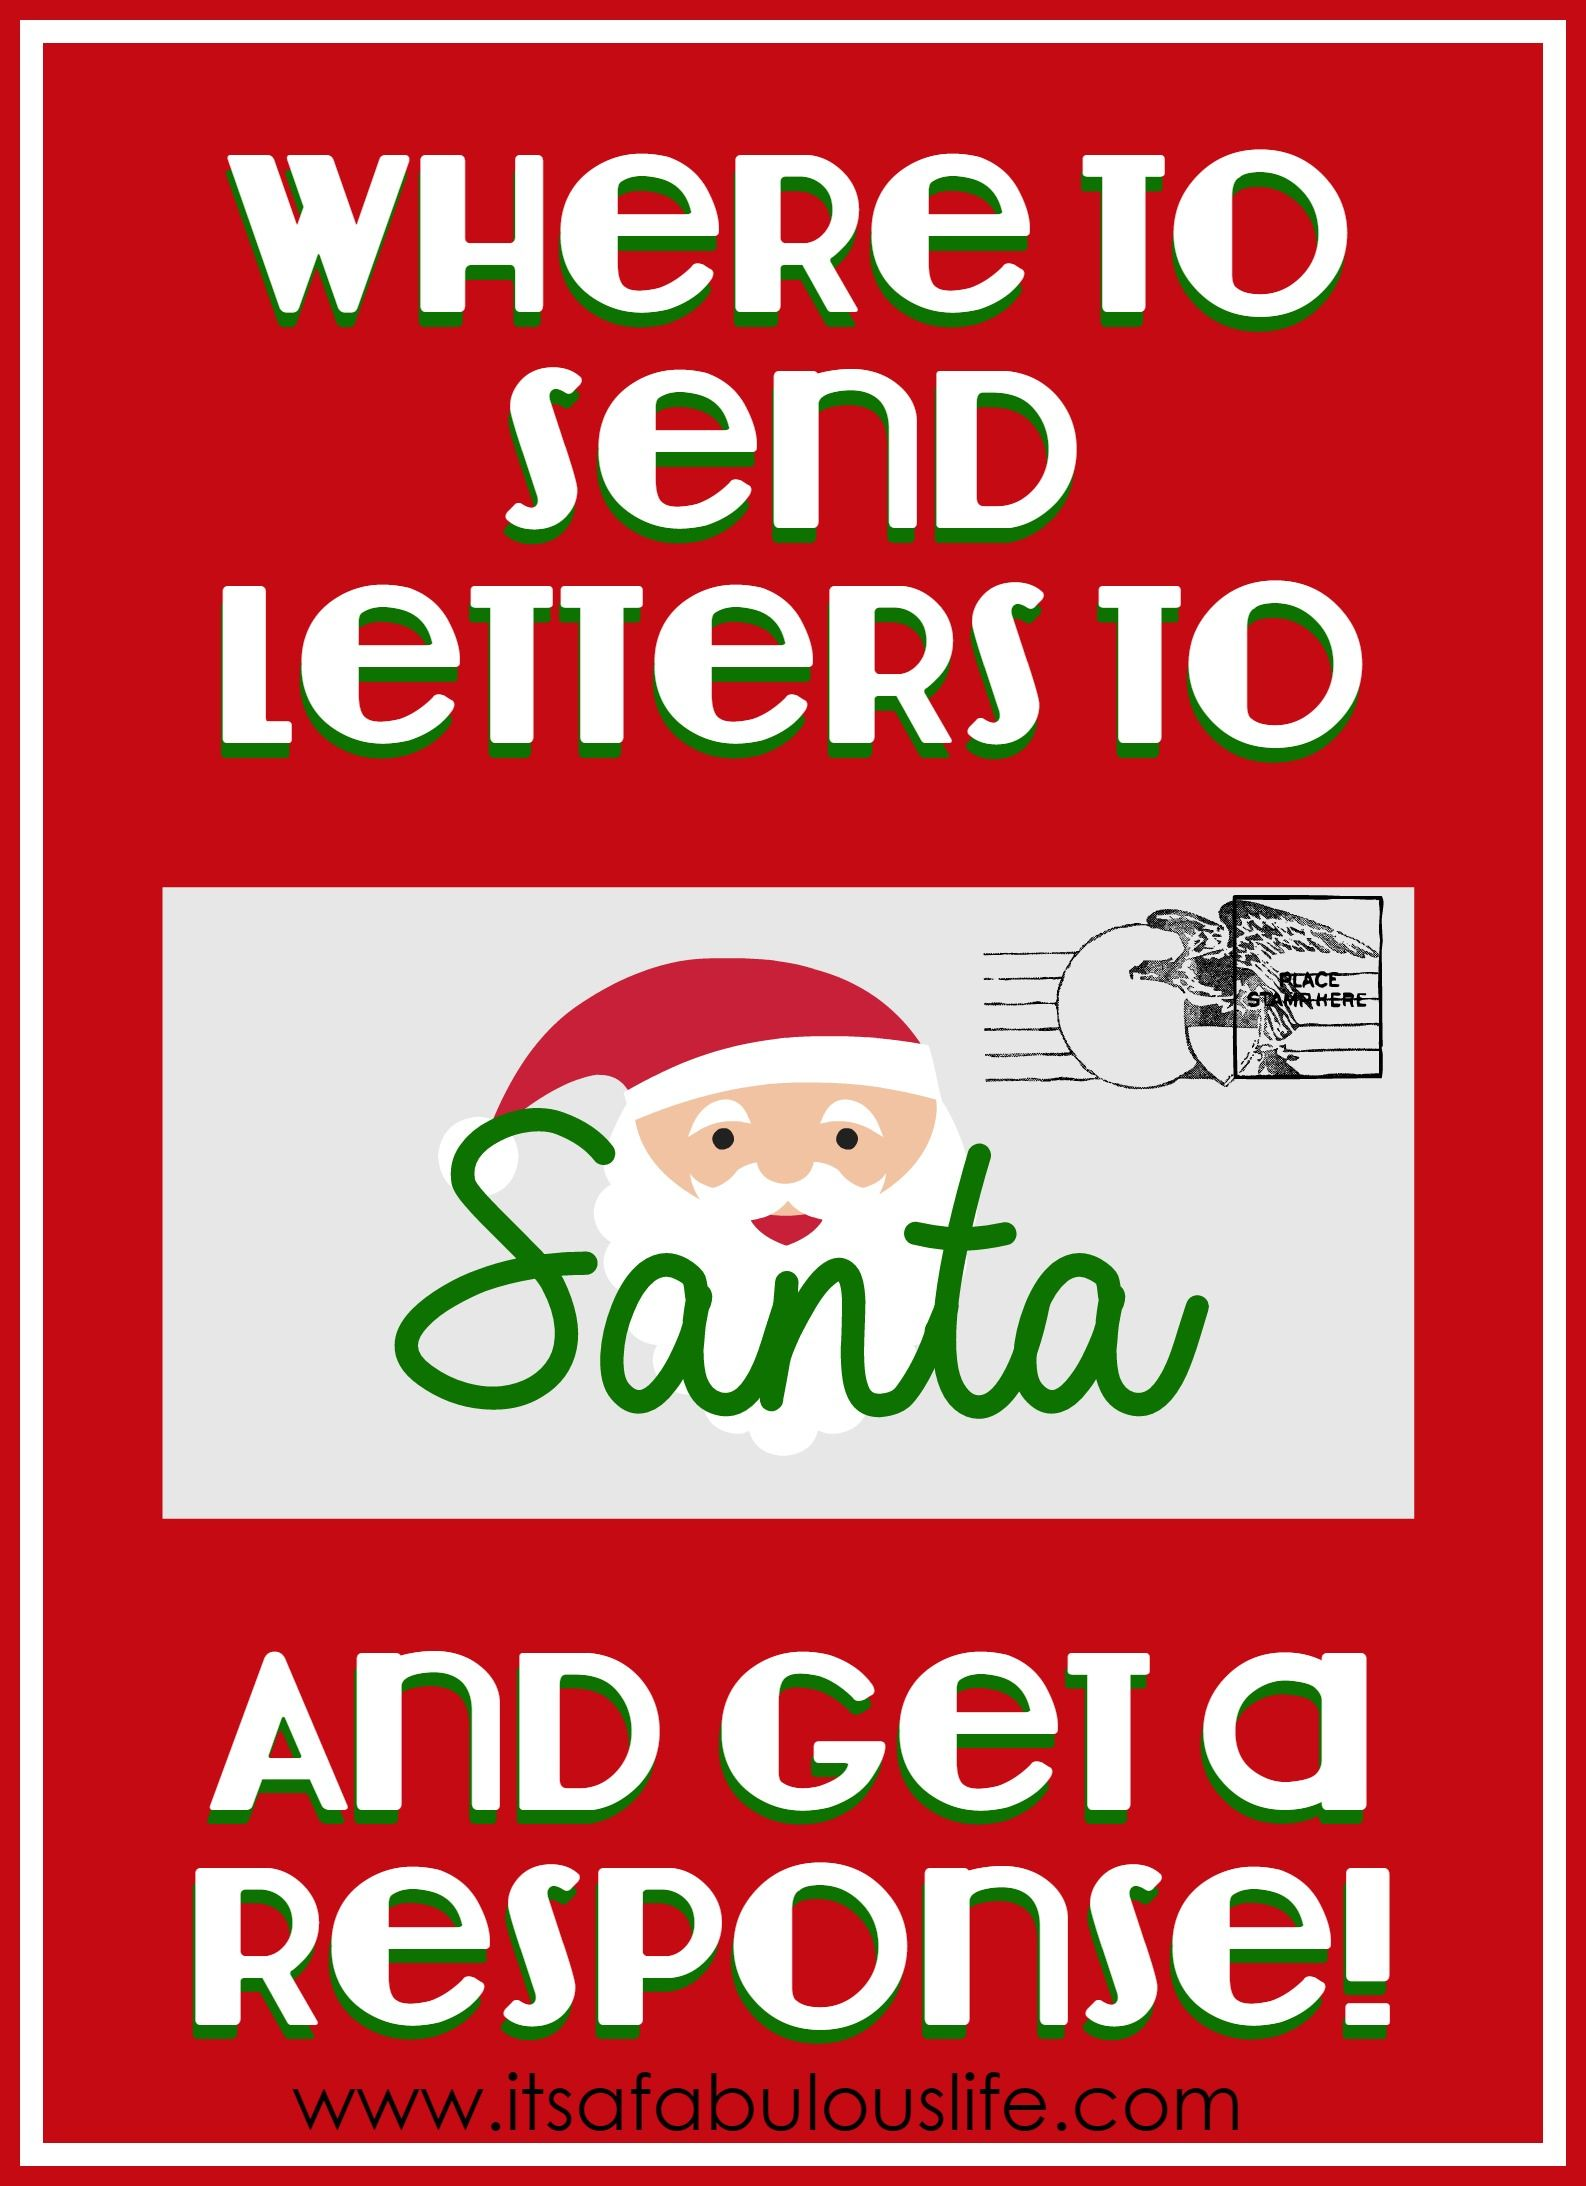 Where to send letters to santa get a response stationary free where to send letters to santa and get a response includes addresses for the us and canada also a free printable santa stationary spiritdancerdesigns Images